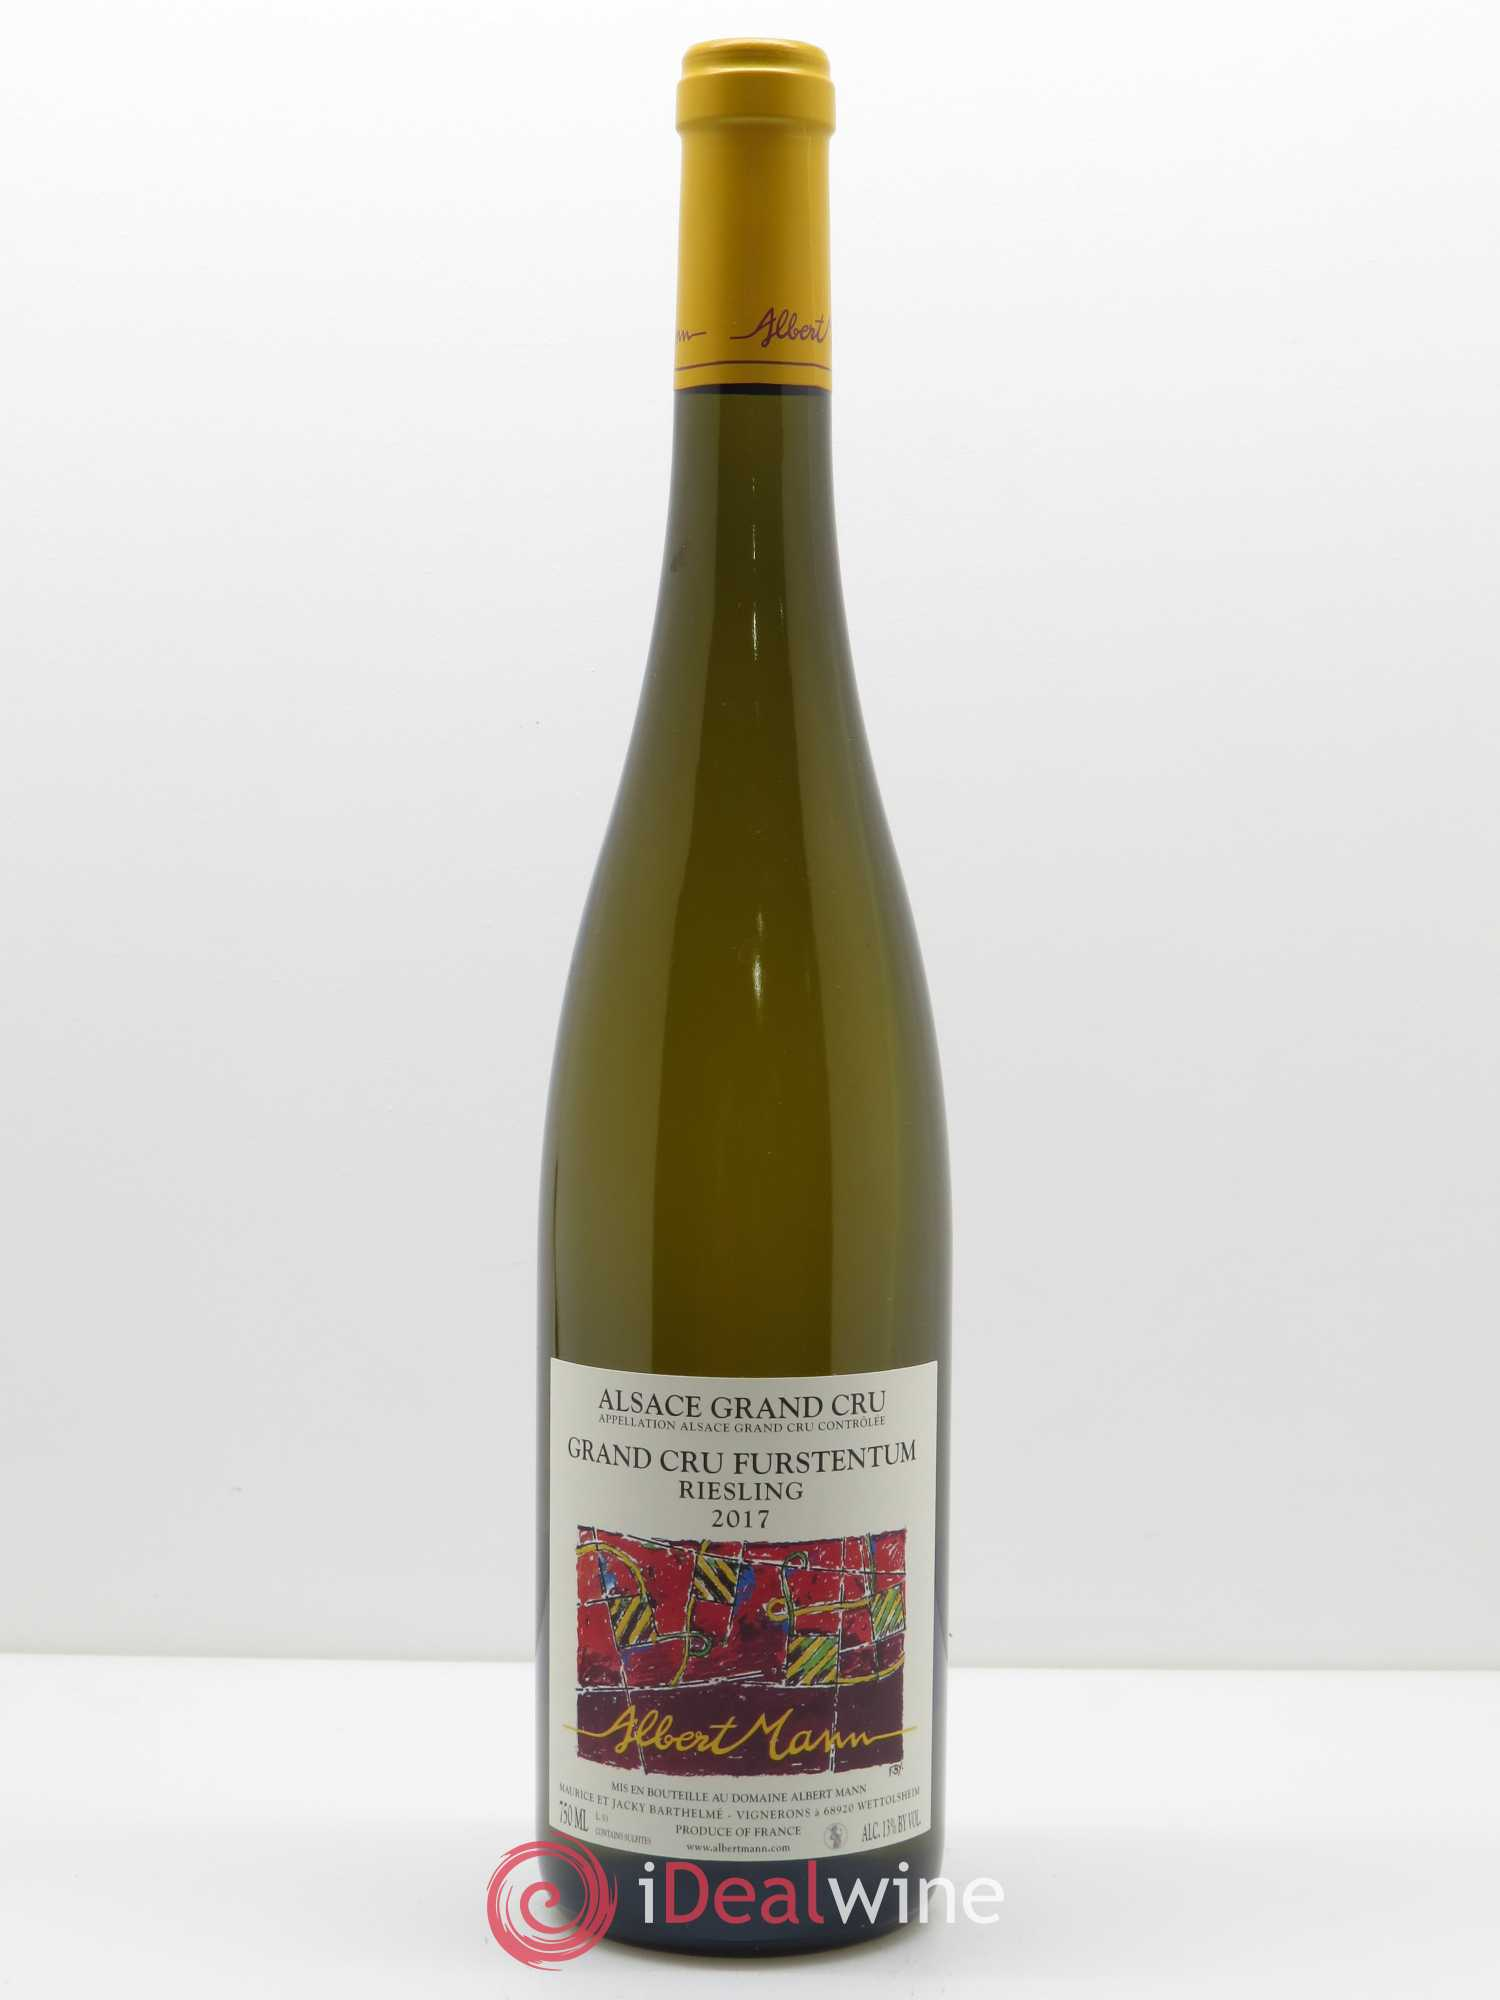 Riesling Grand Cru Furstentum Albert Mann  2017 - Lot de 1 Bouteille